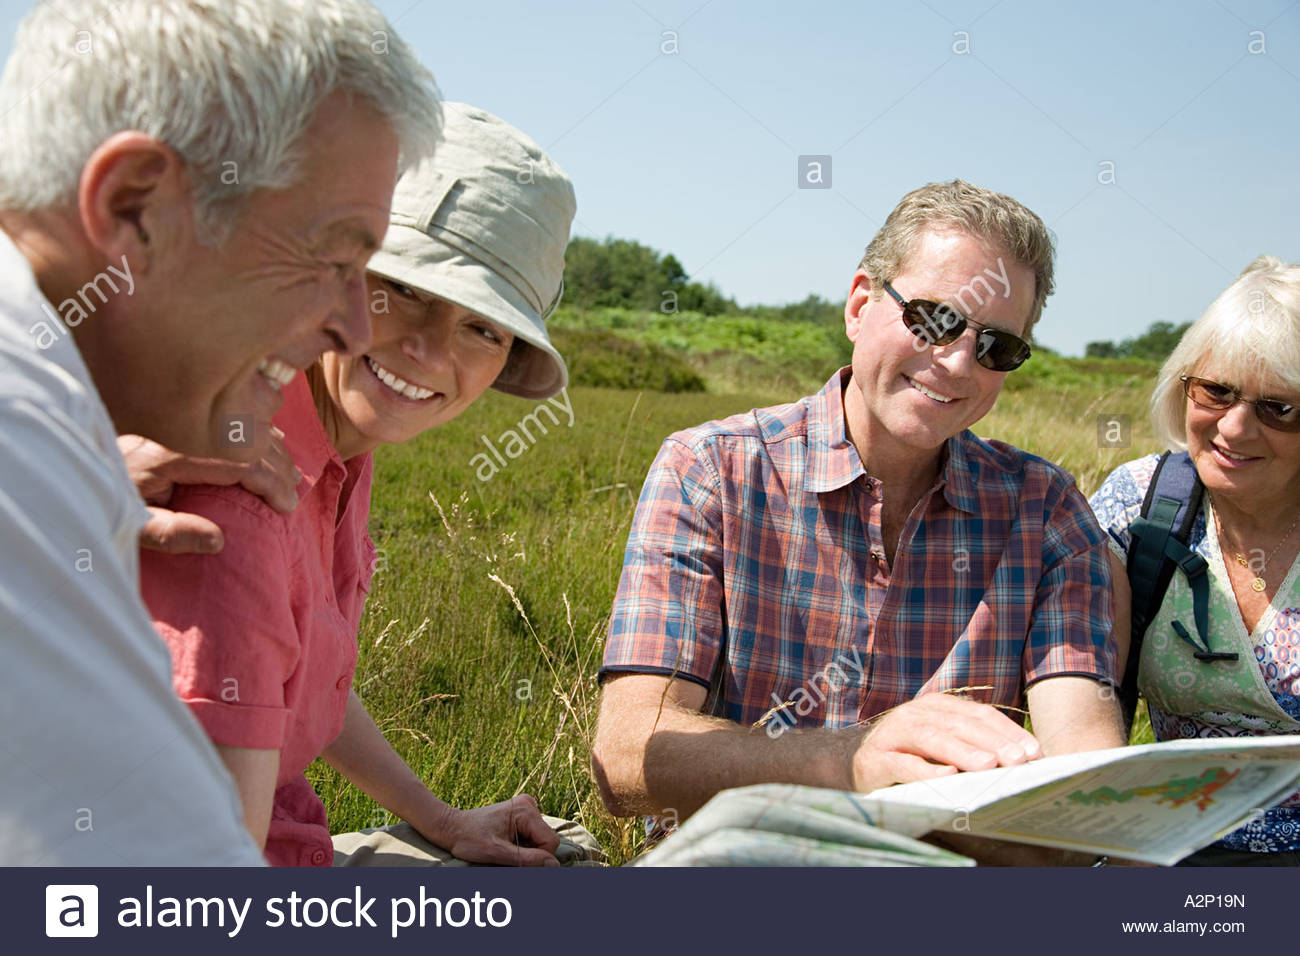 Ramblers looking at map - Stock Image